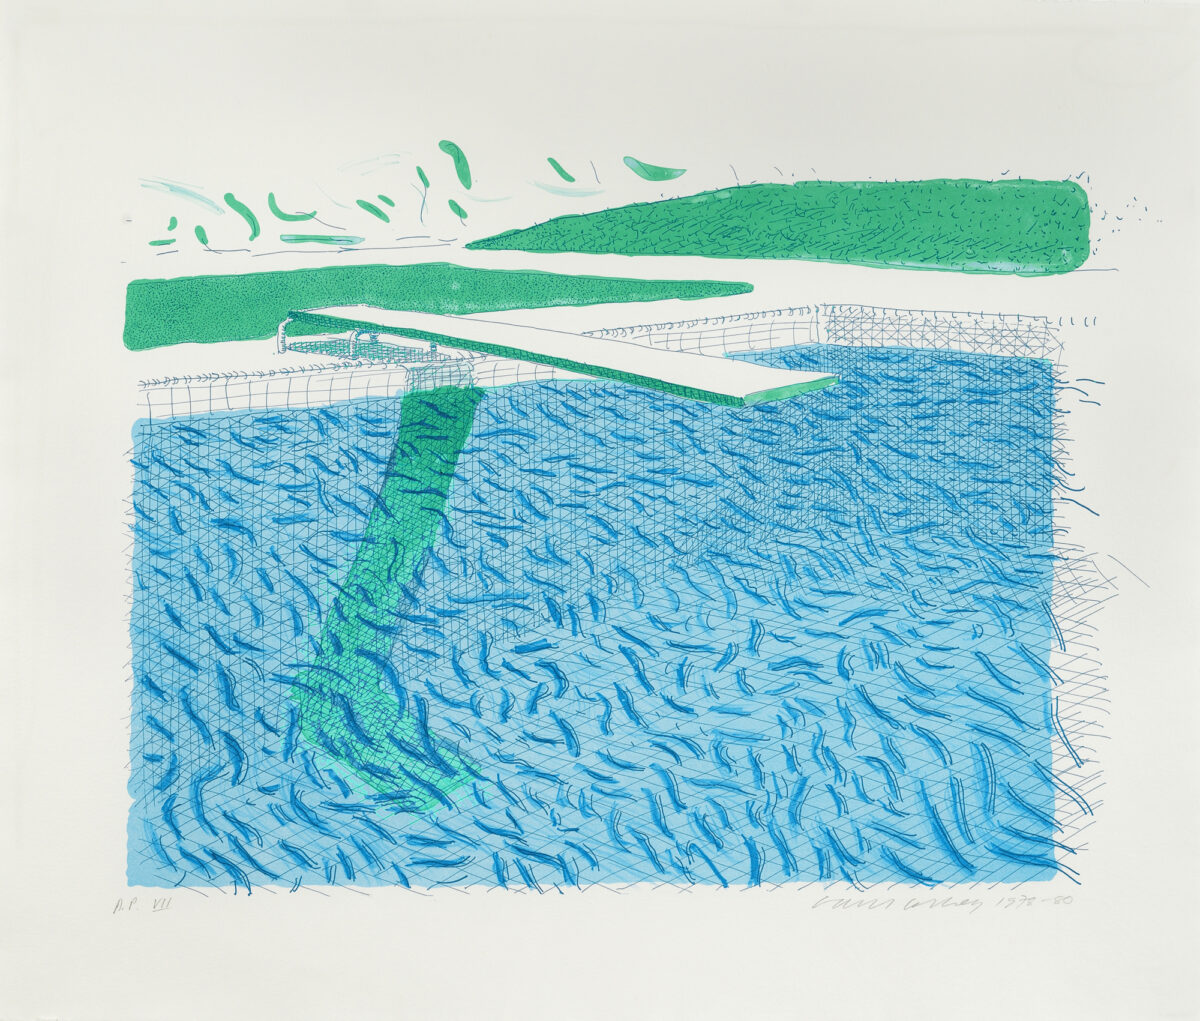 David Hockney Lithographic Water Made of Lines, Crayon, and a Blue Wash, original lithograph for sale